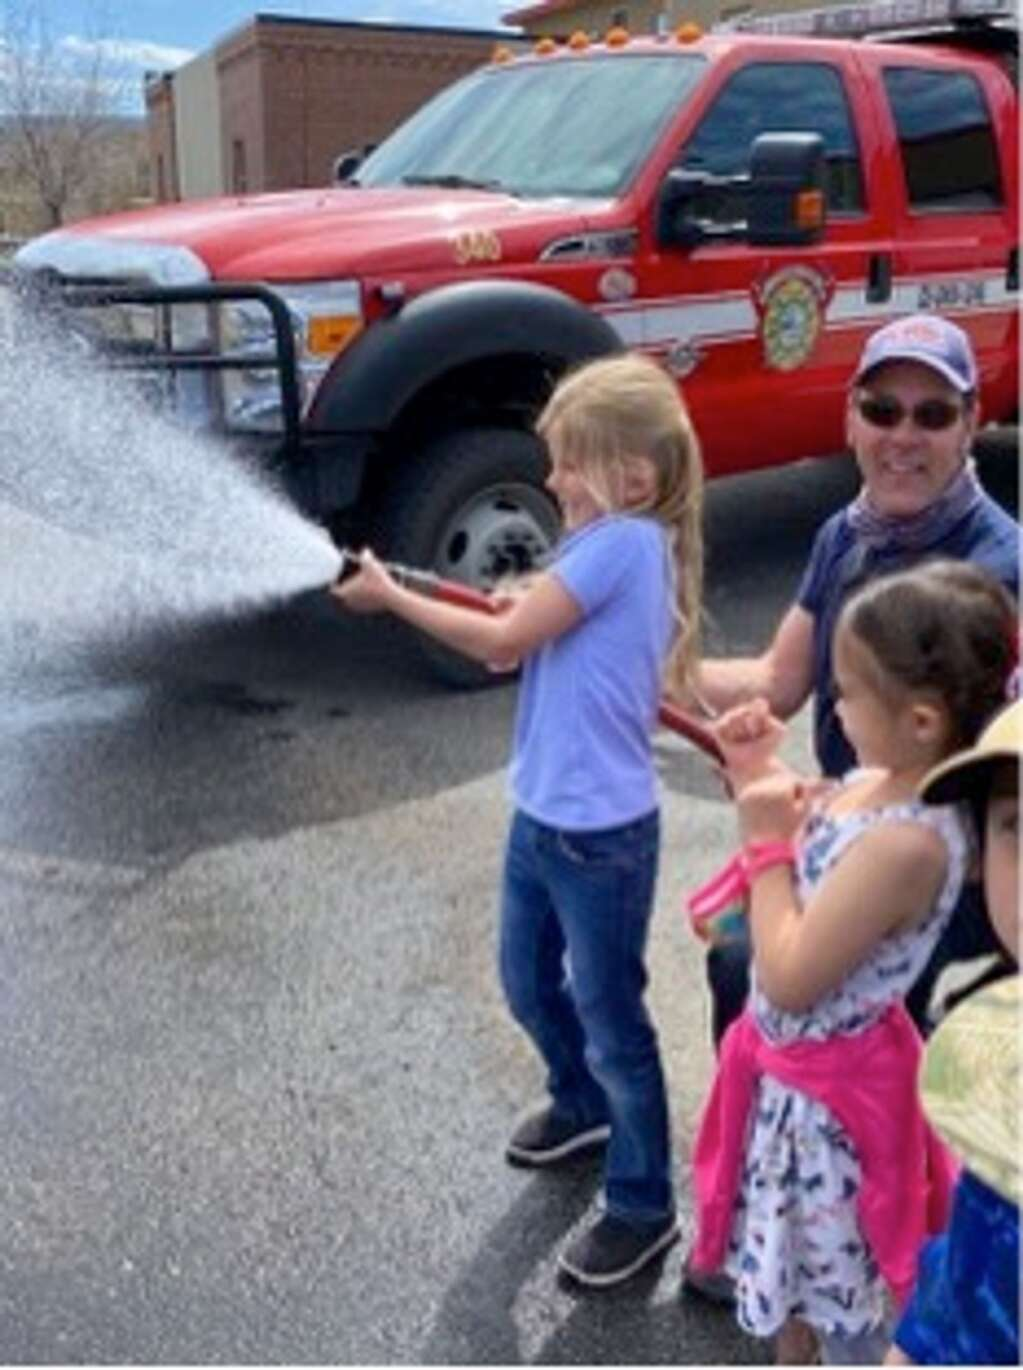 Granby Elementary kindergartners take turns spraying the Grand Fire firehose during a field trip to Kaibab Park. | Photos courtesy East Grand School District